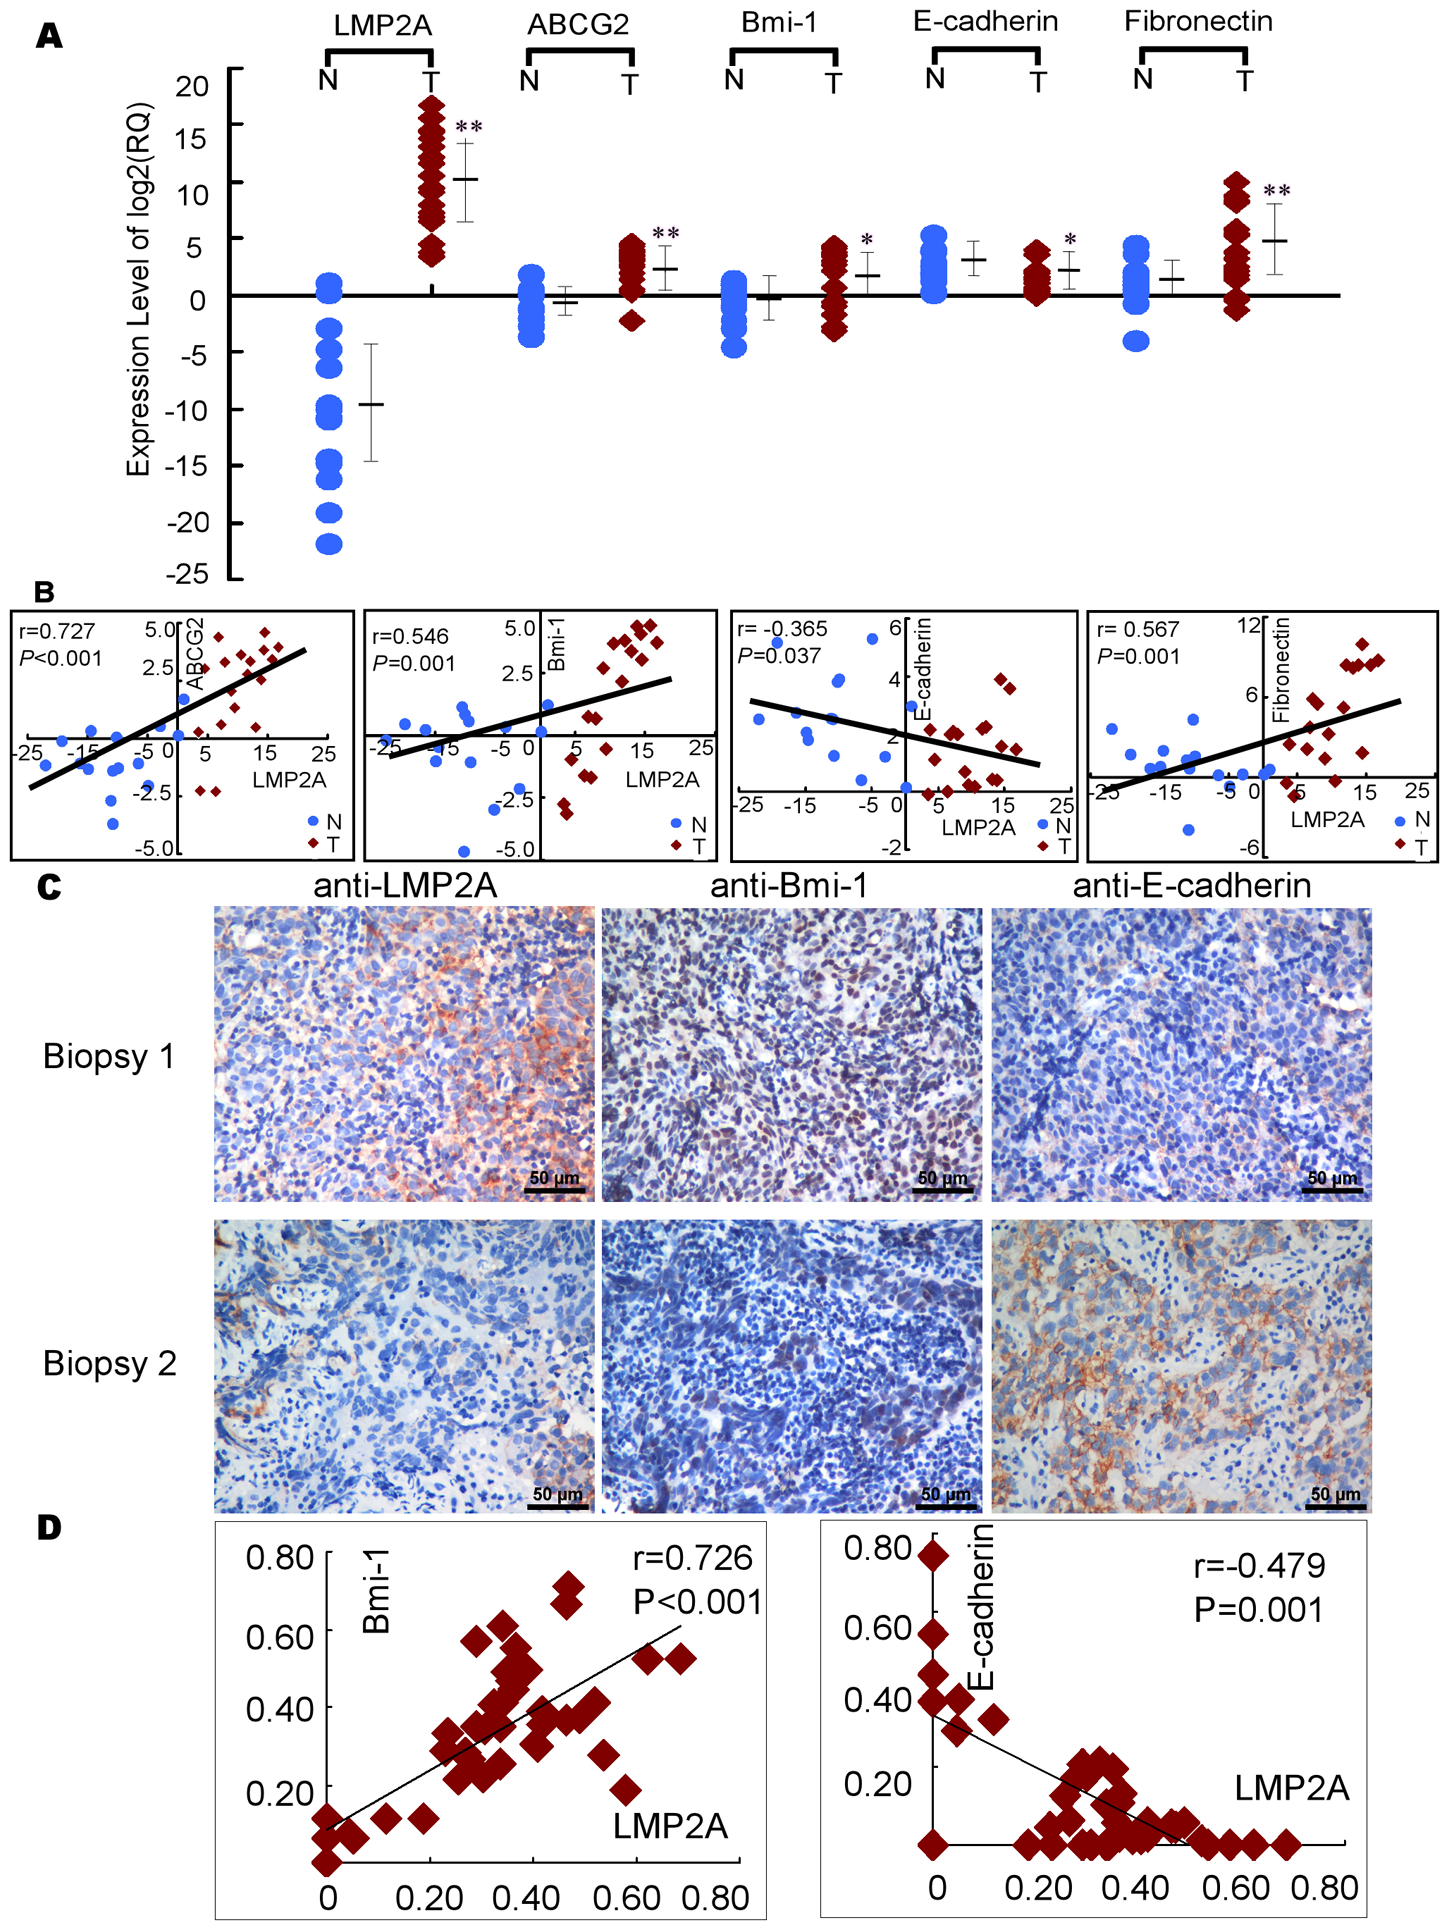 The expression of LMP2A correlates with the expression of EMT and stem cell-related markers in NPC.